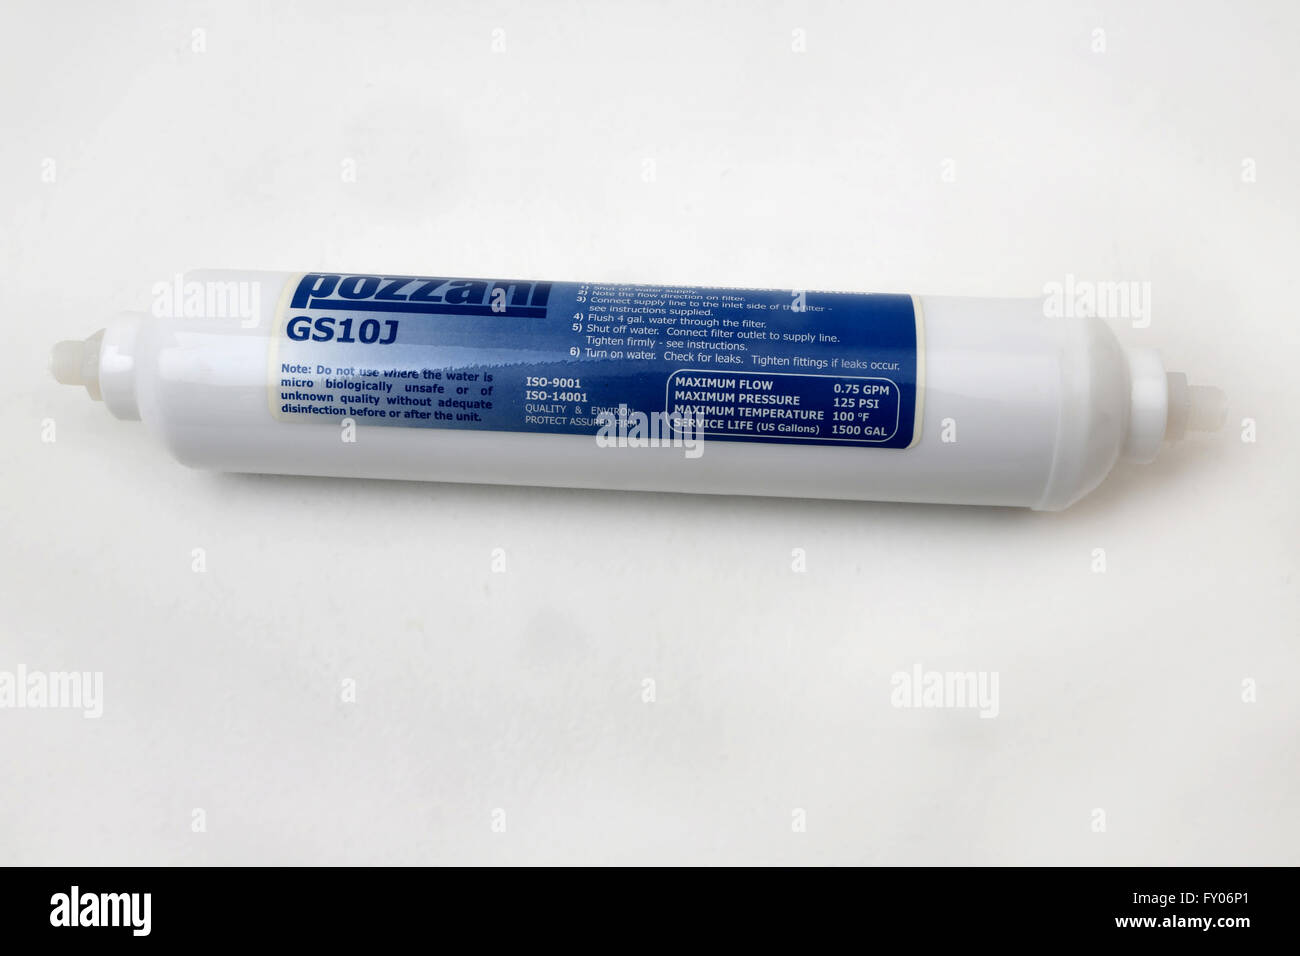 Pozzani compatible water filter cartridge - Stock Image